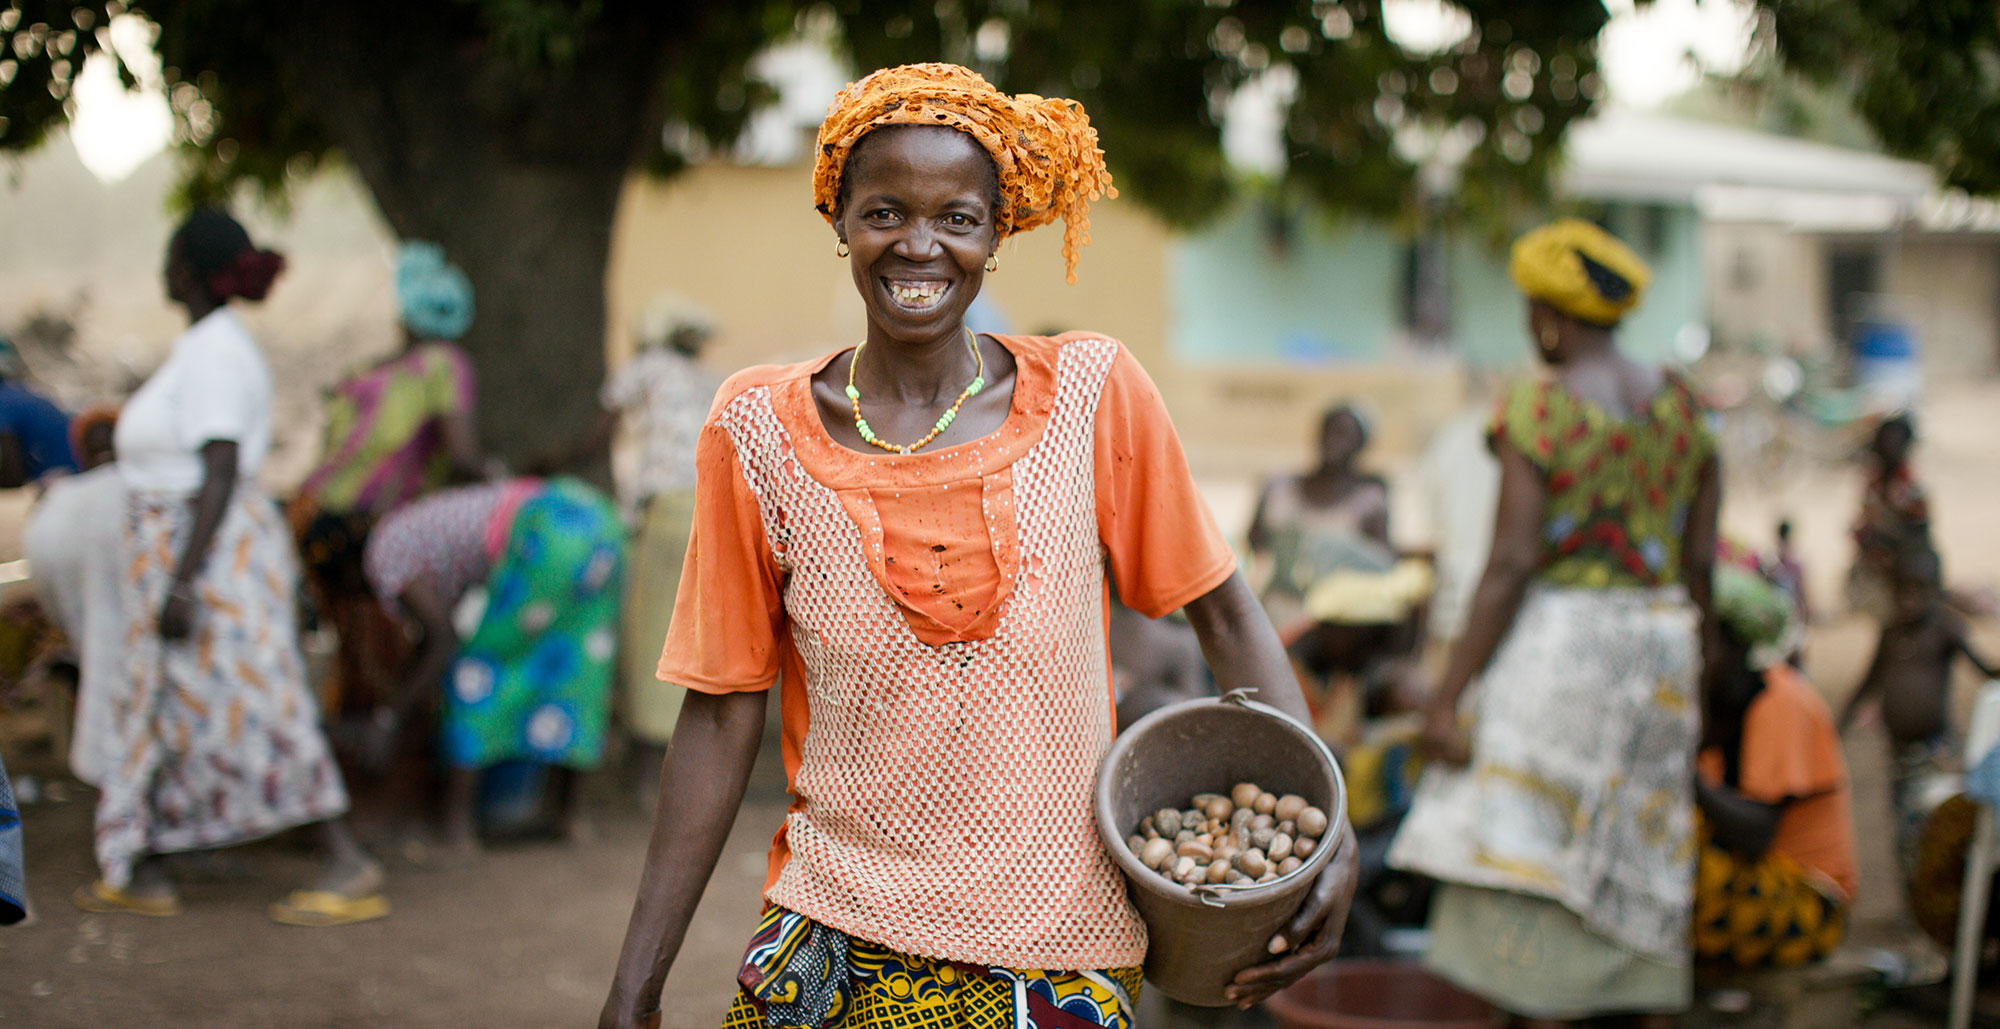 A woman holding a bucket smiles.